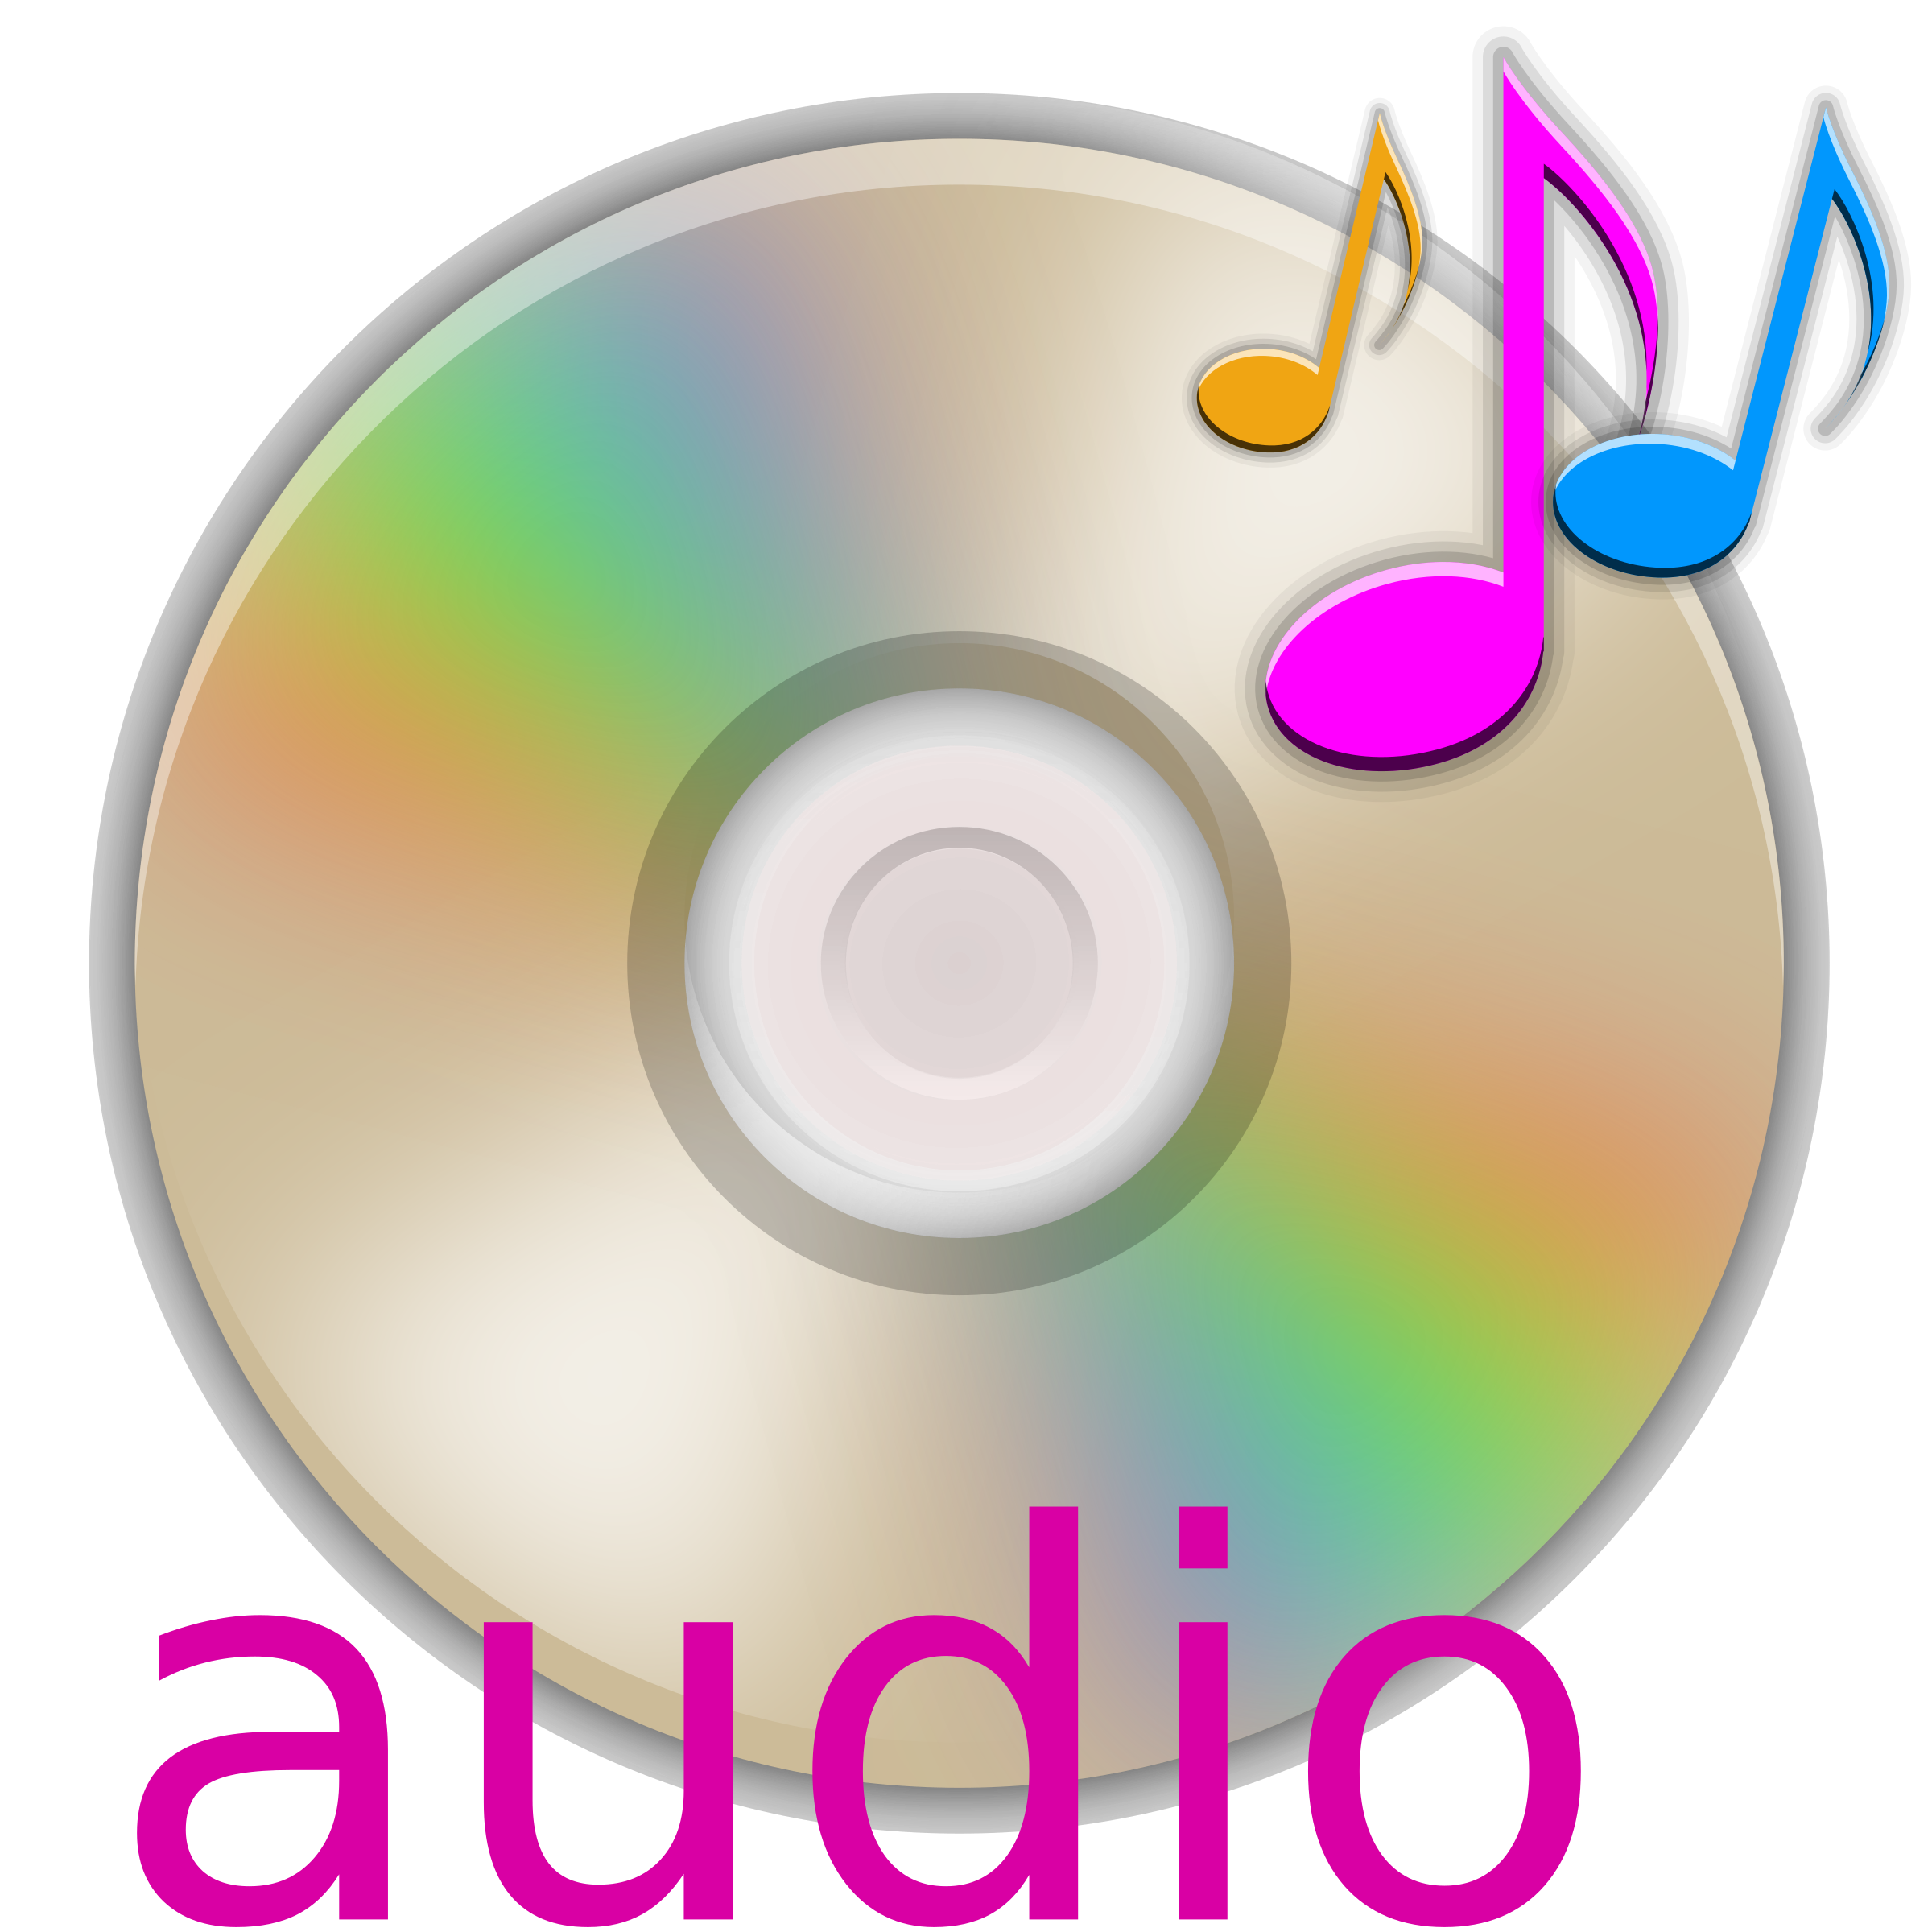 Audio cd png. Icons free and downloads